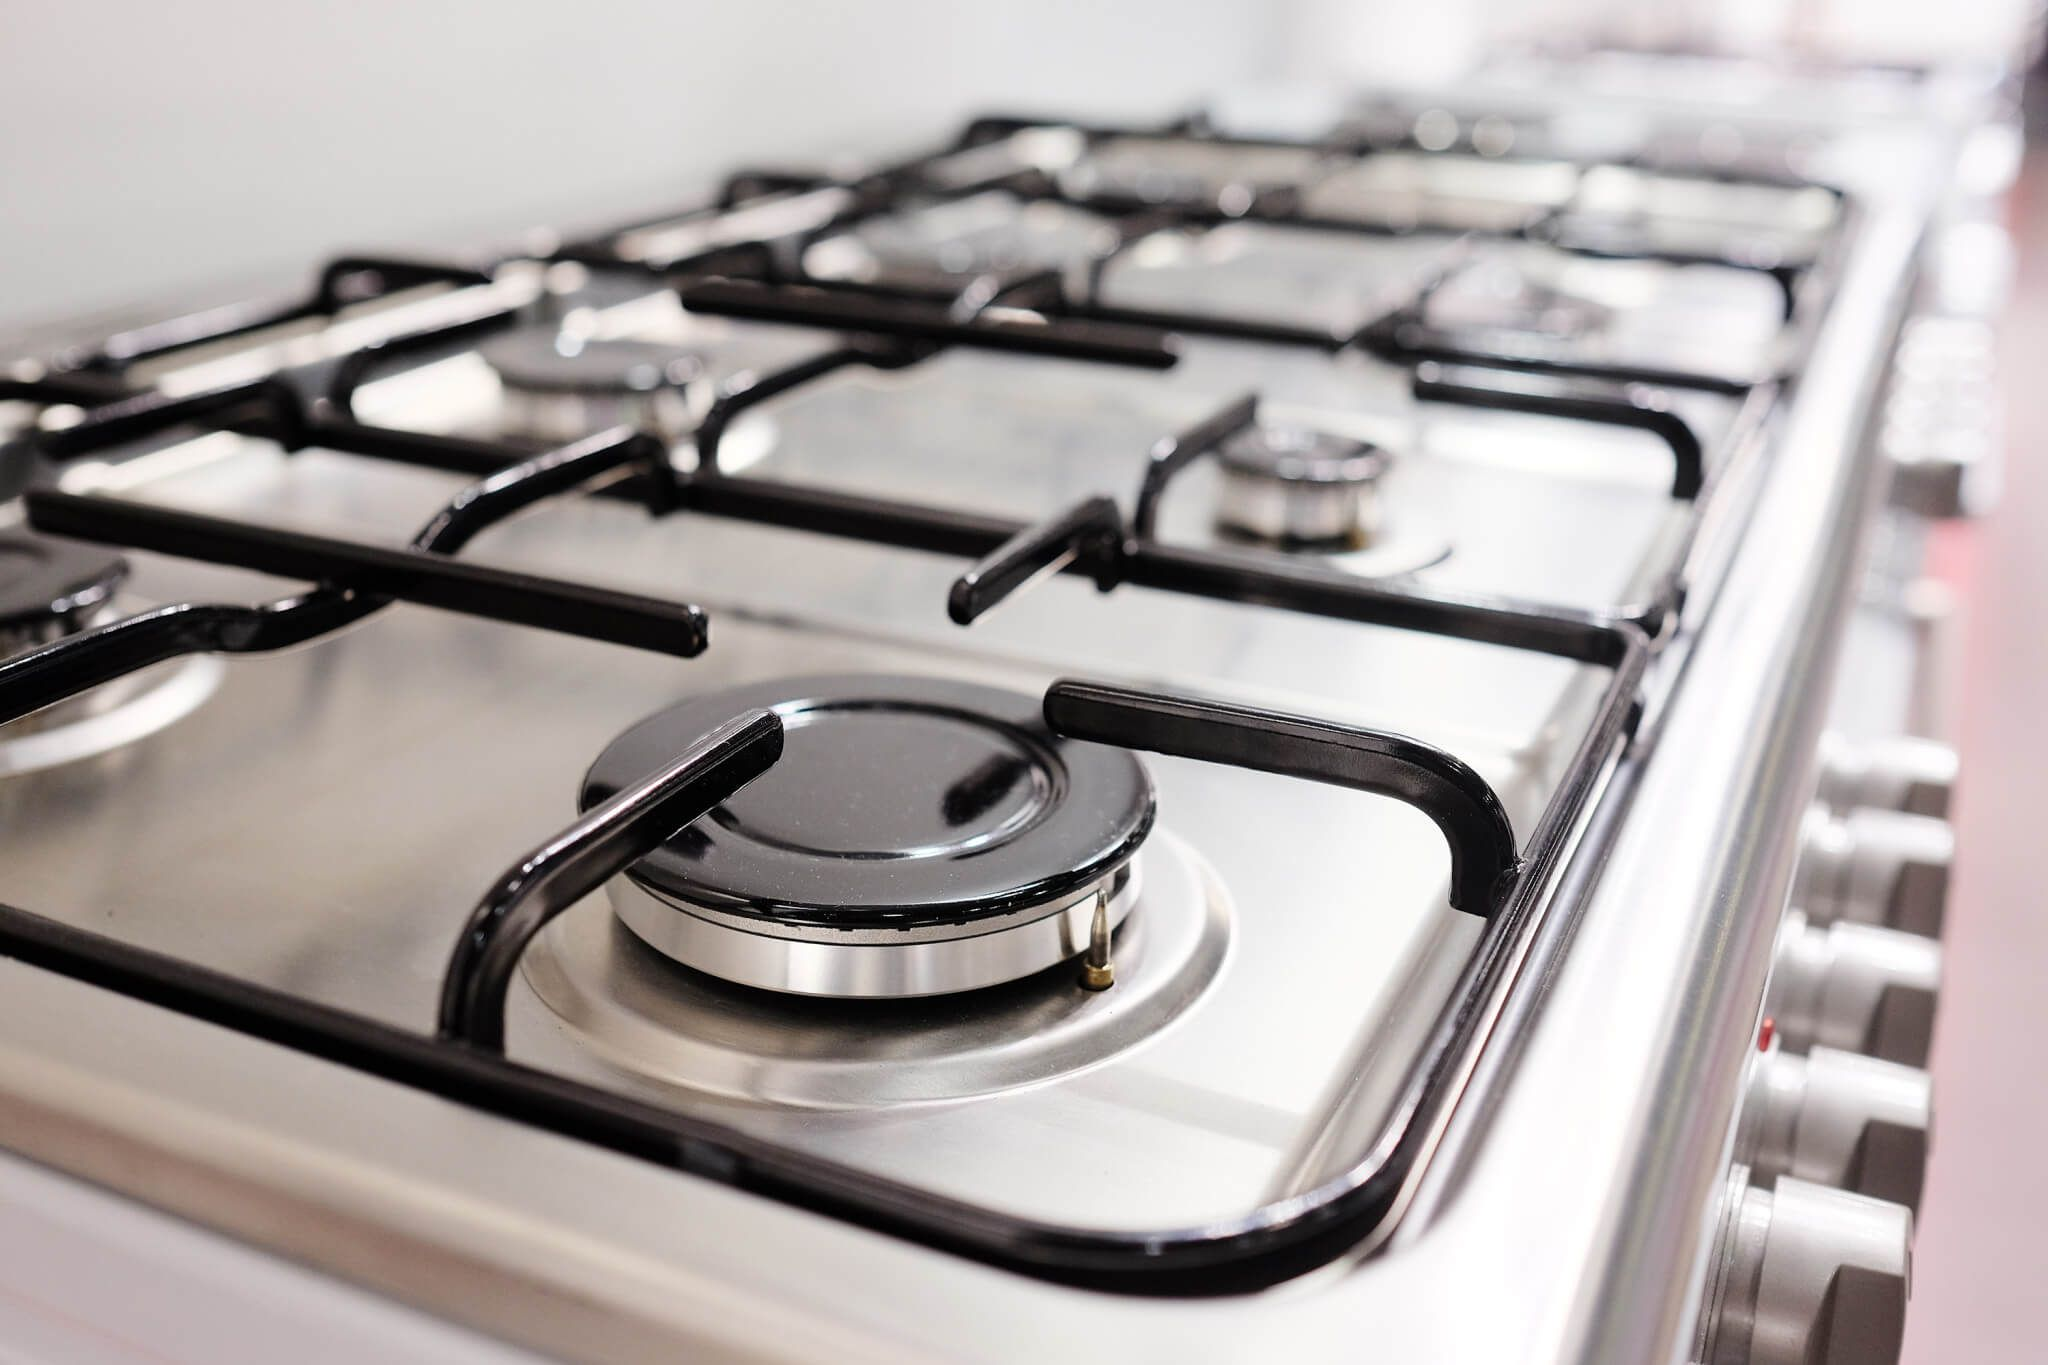 Best stove repair services near me online in 2020 Stove